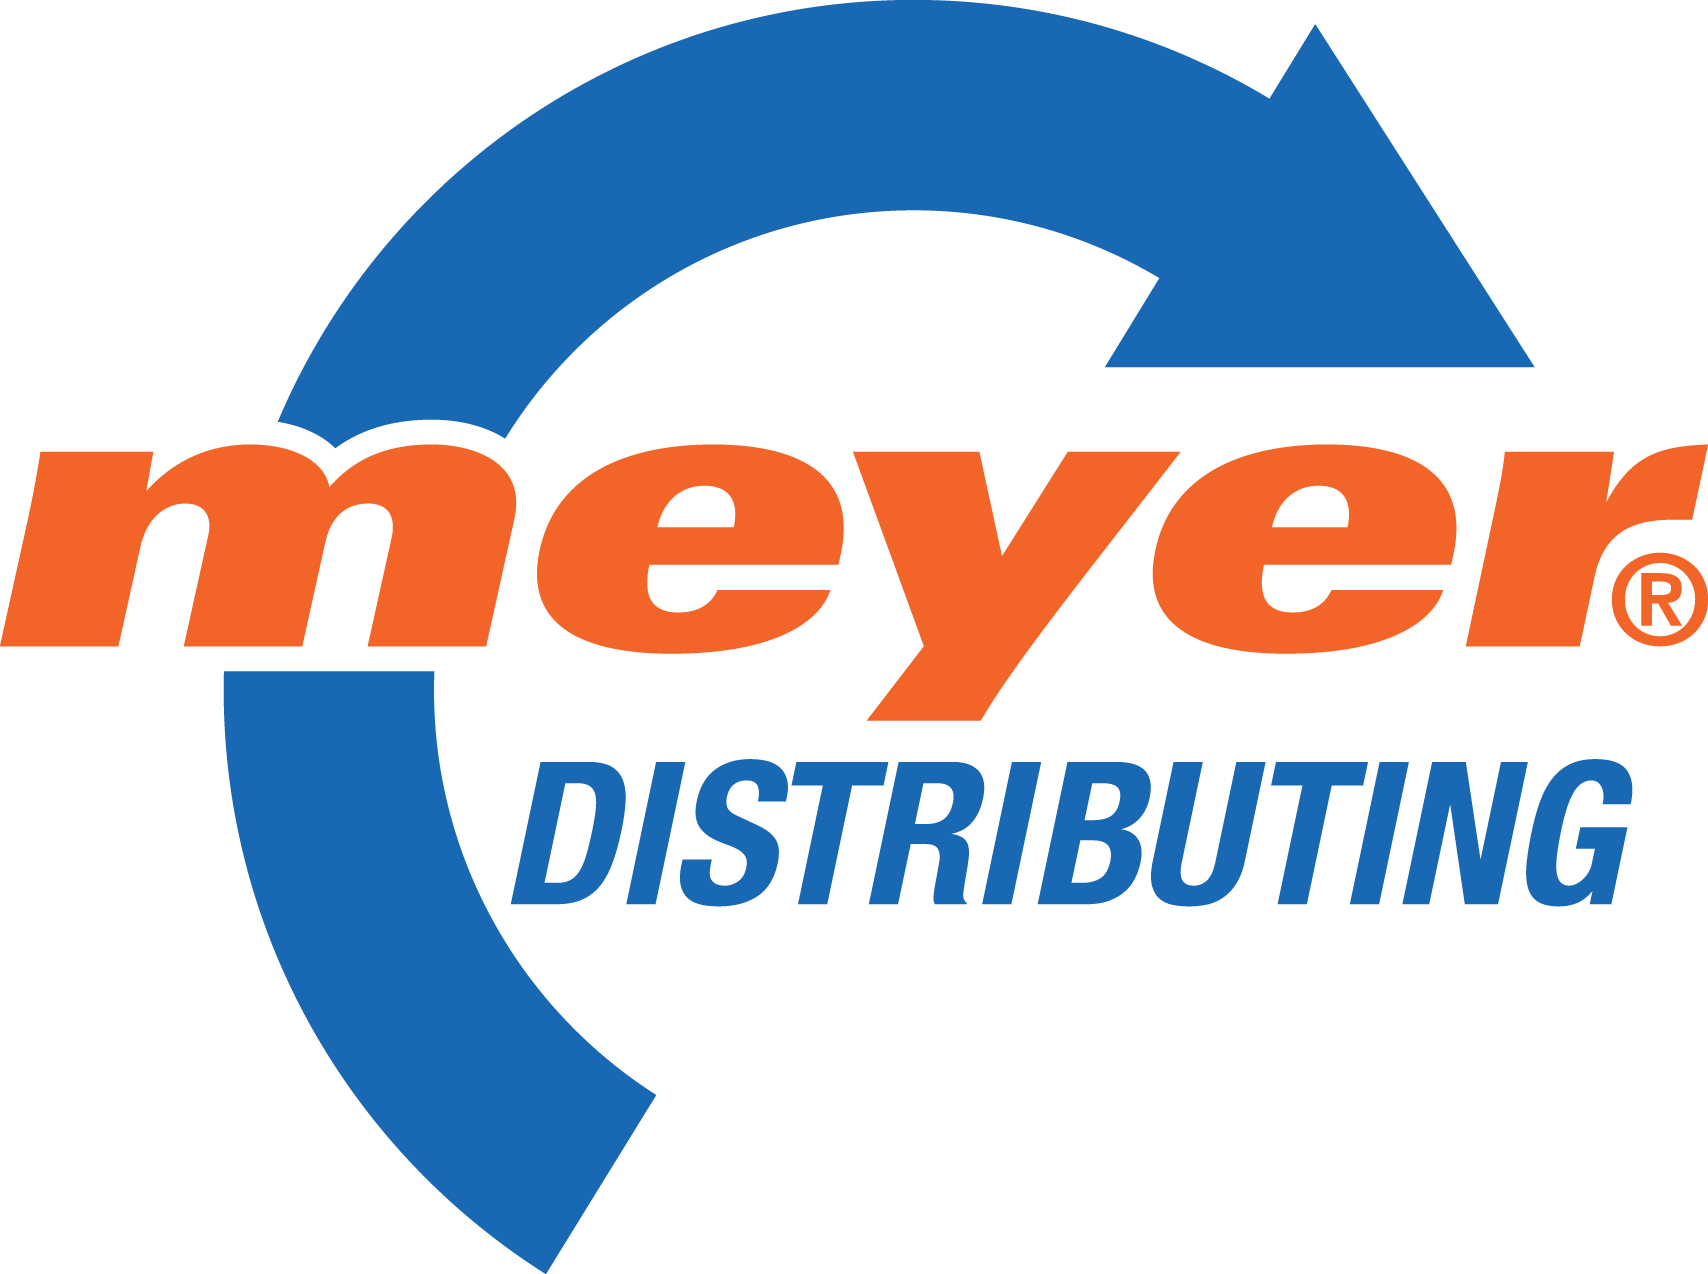 Auto Antlers Coming Soon to Meyer Distributing!